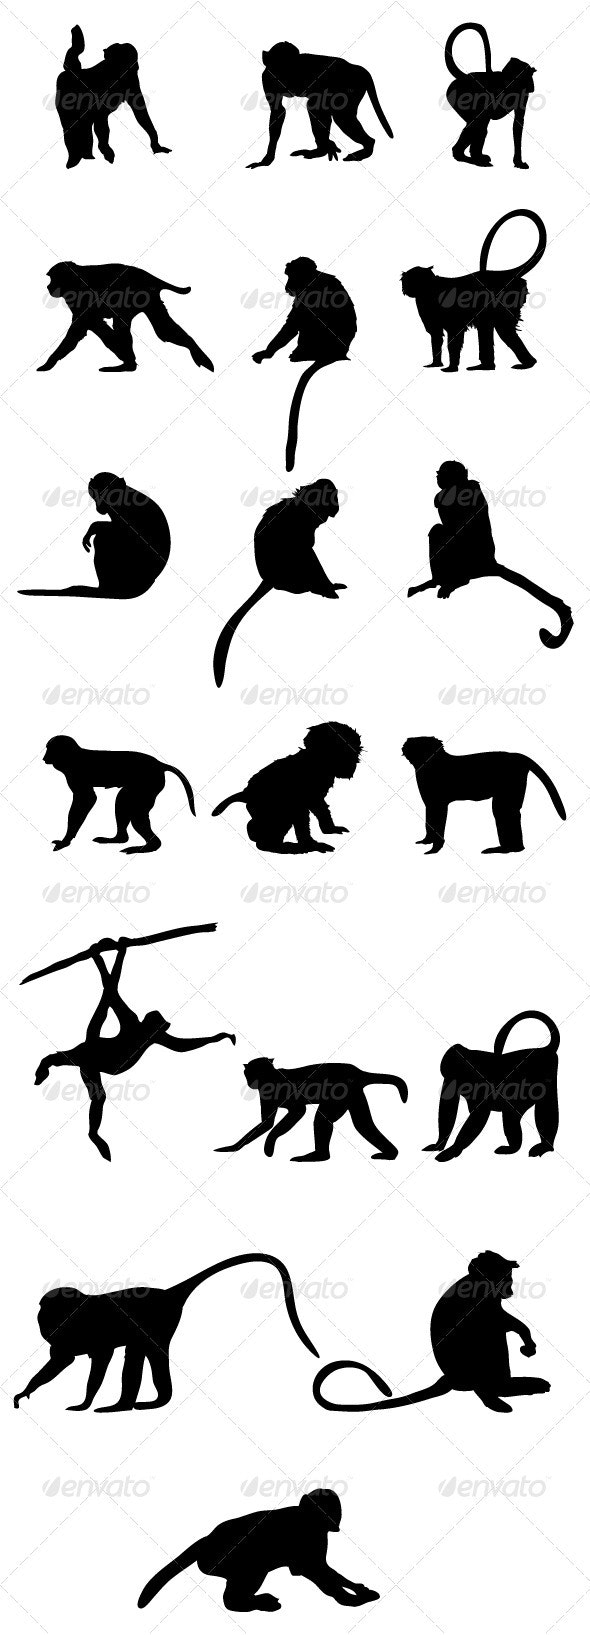 Monkey Silhouettes - Animals Characters